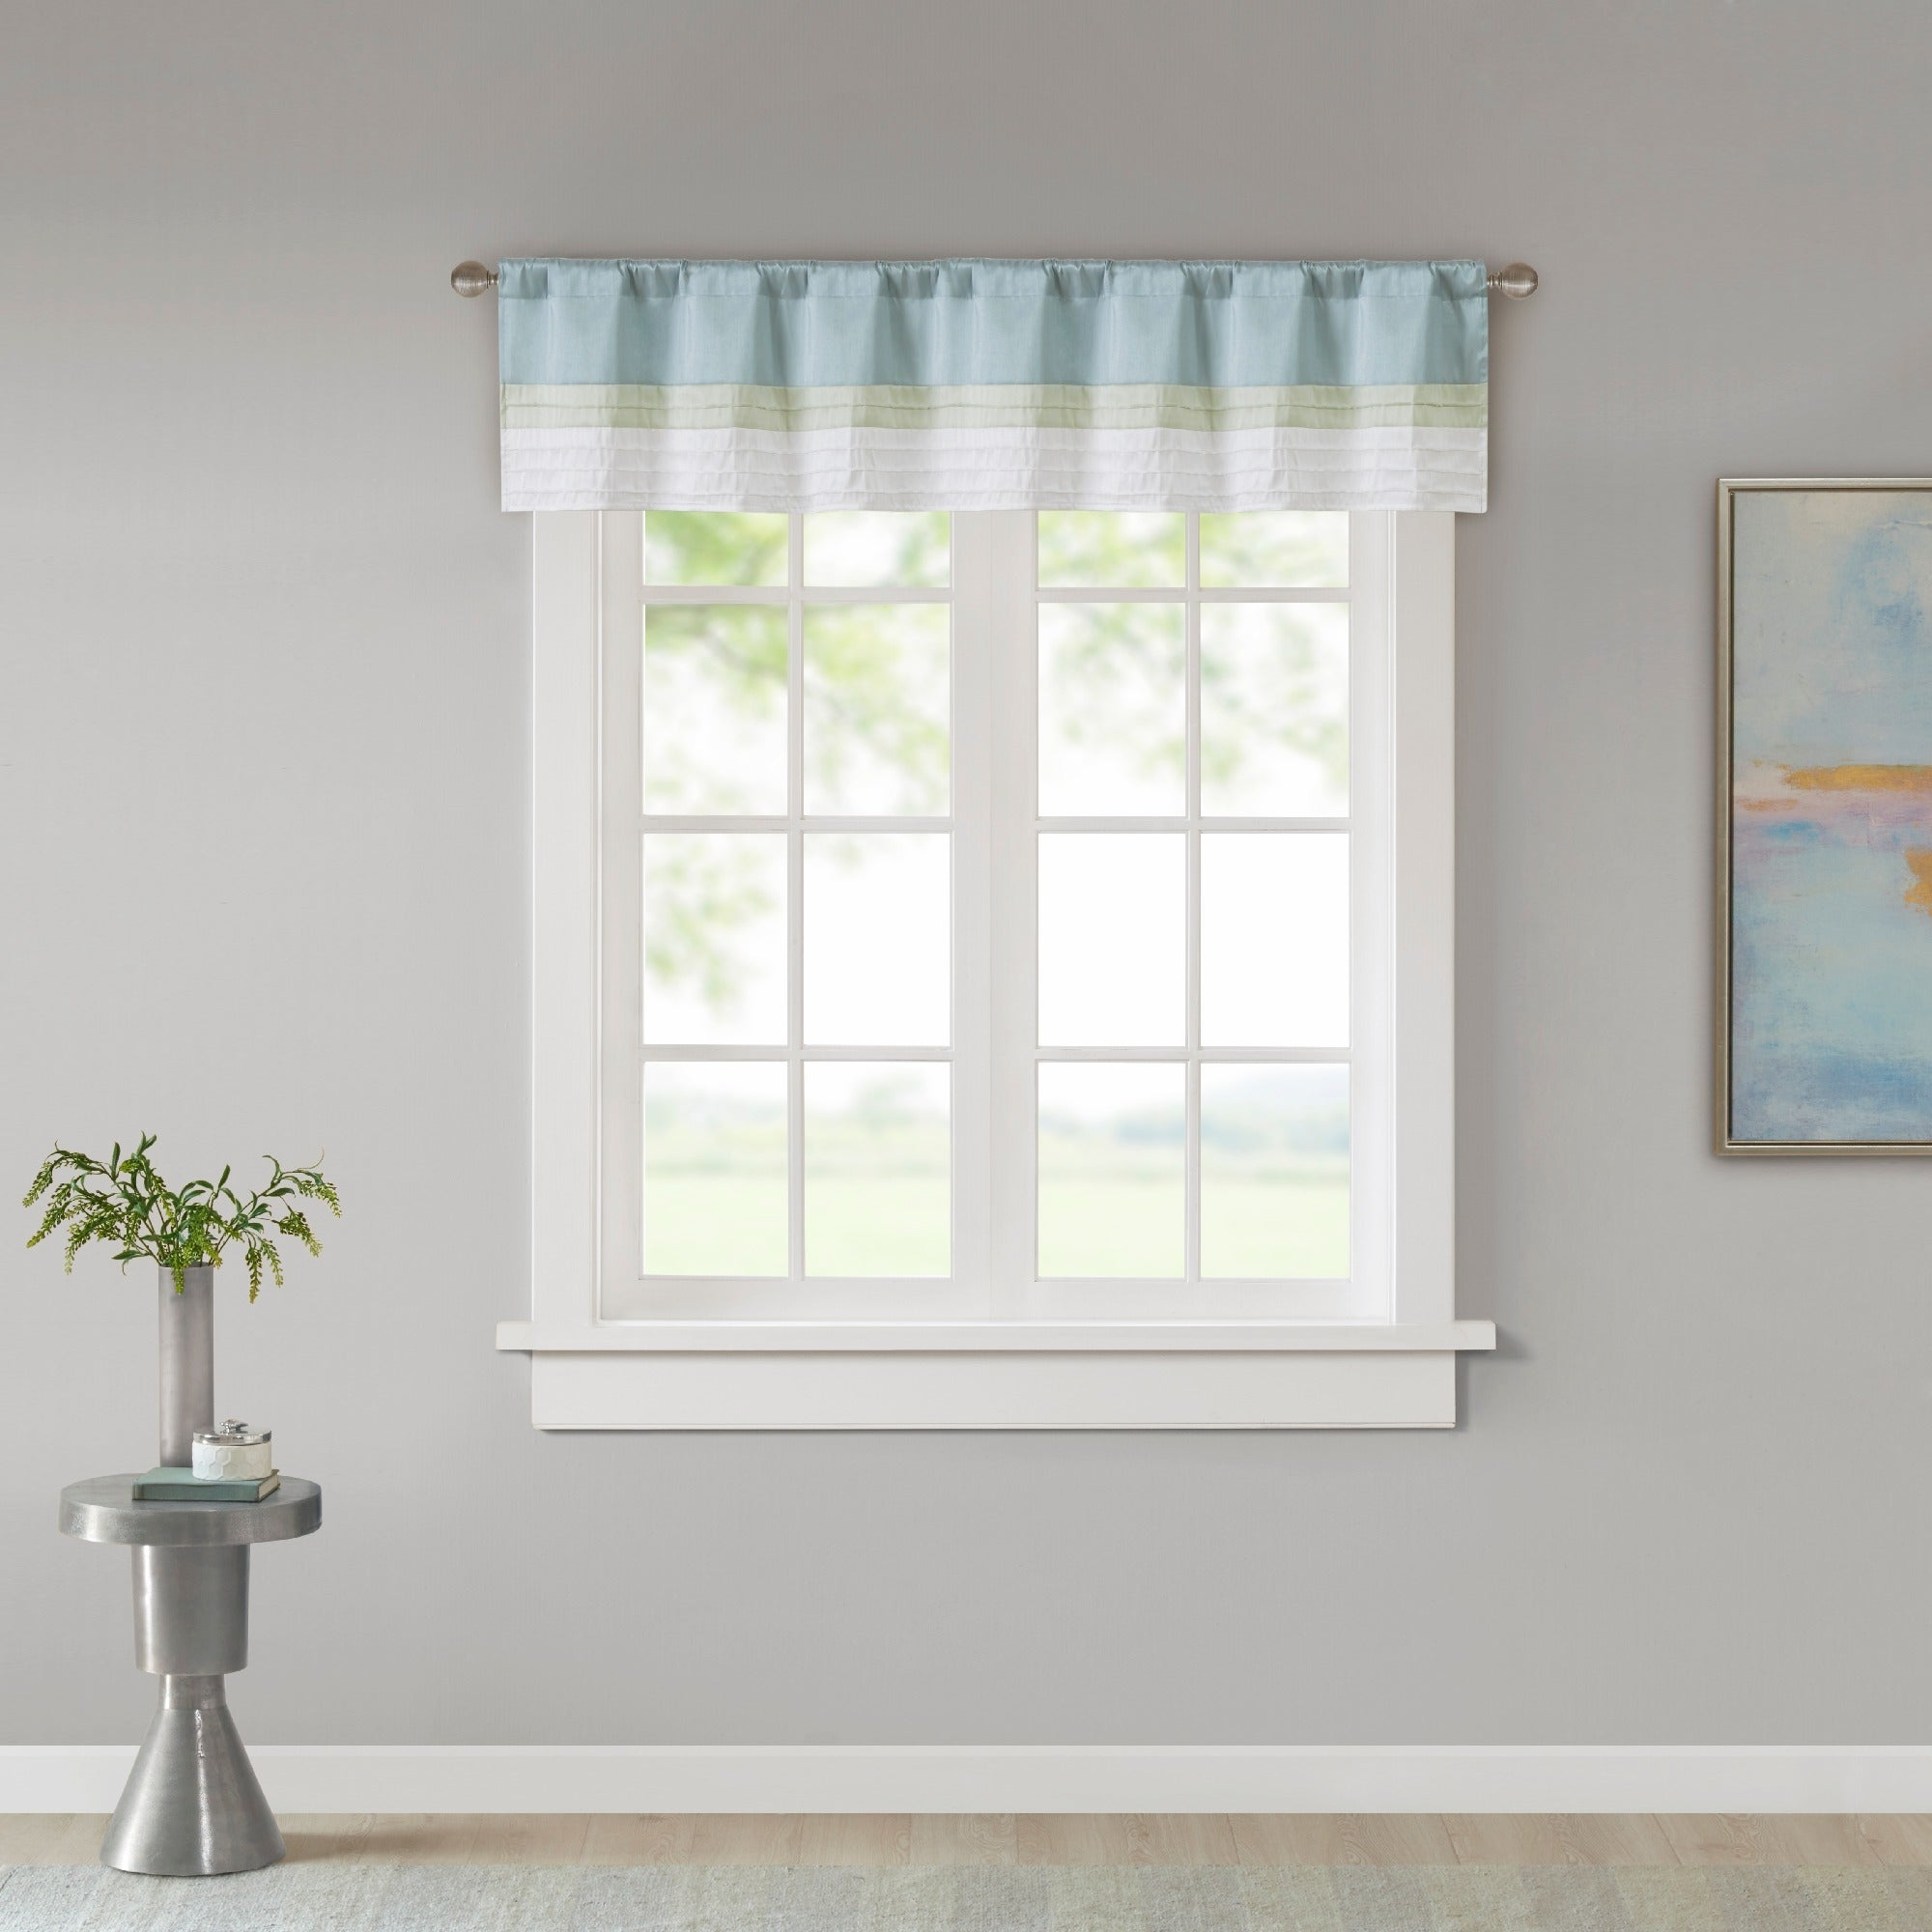 valance aldepvh window windows decoration extra valances goodworksfurniture home for to at click expand